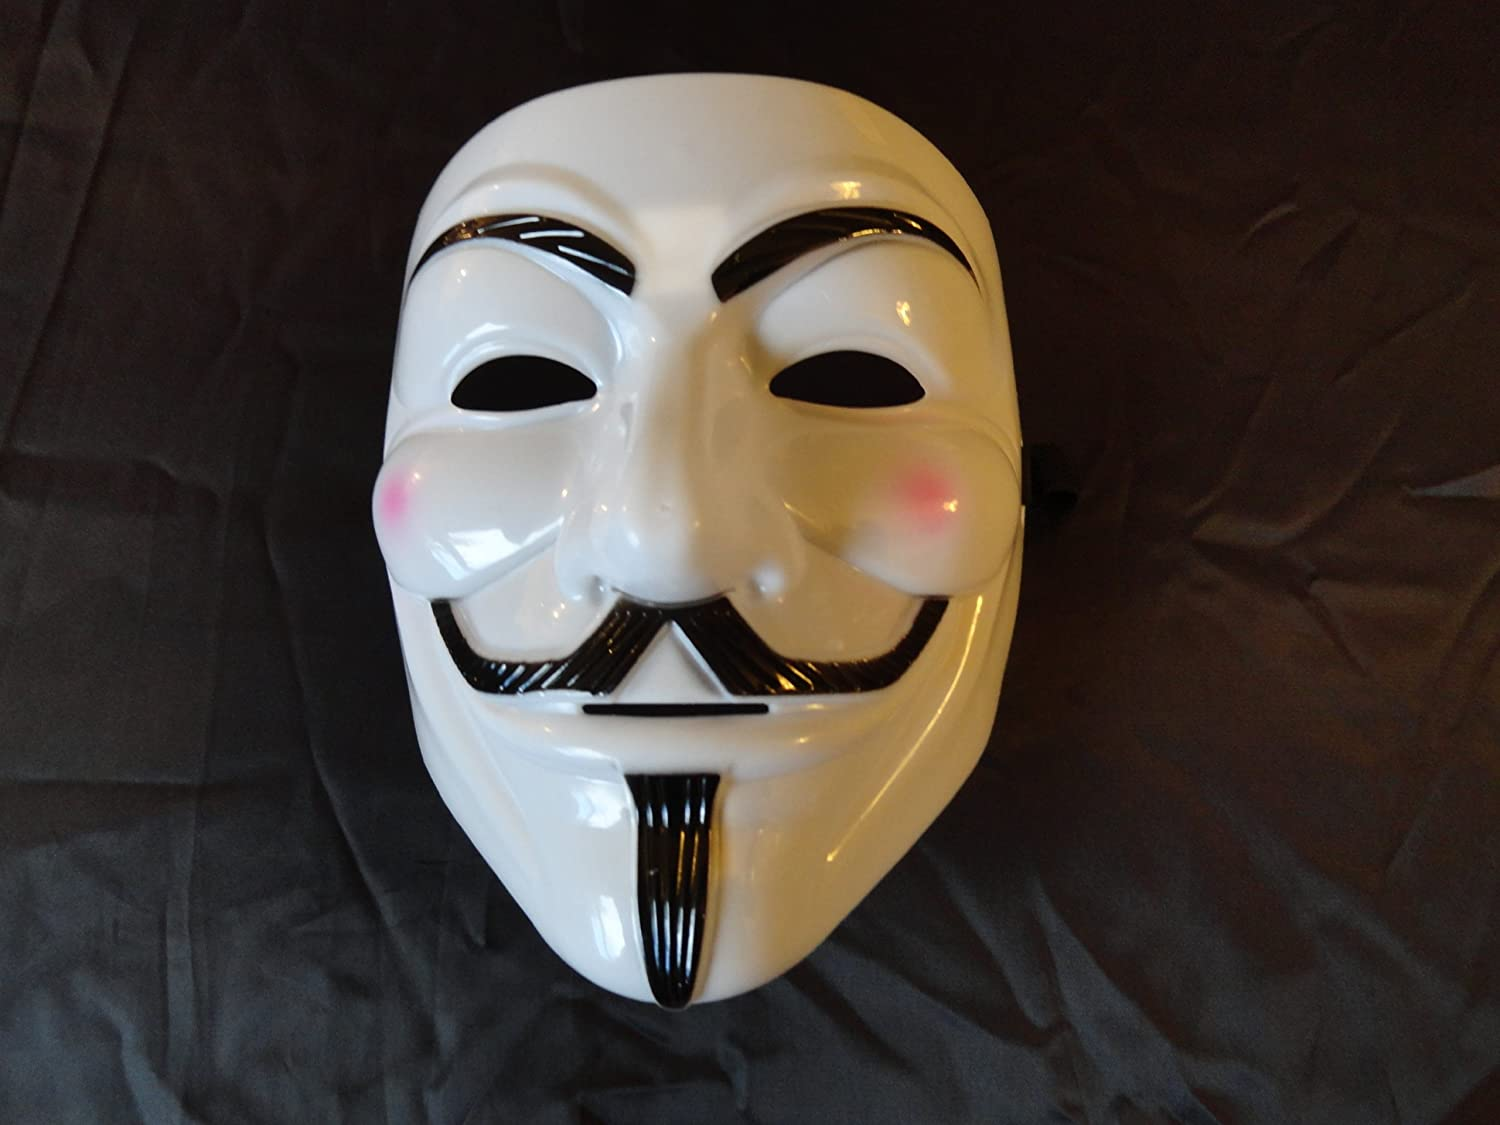 أقنعة,فانديتا,أنونيموس,Vendetta,mask,,mask,Vendetta,أقنعة,أنونيموس,فانديتا,قناع